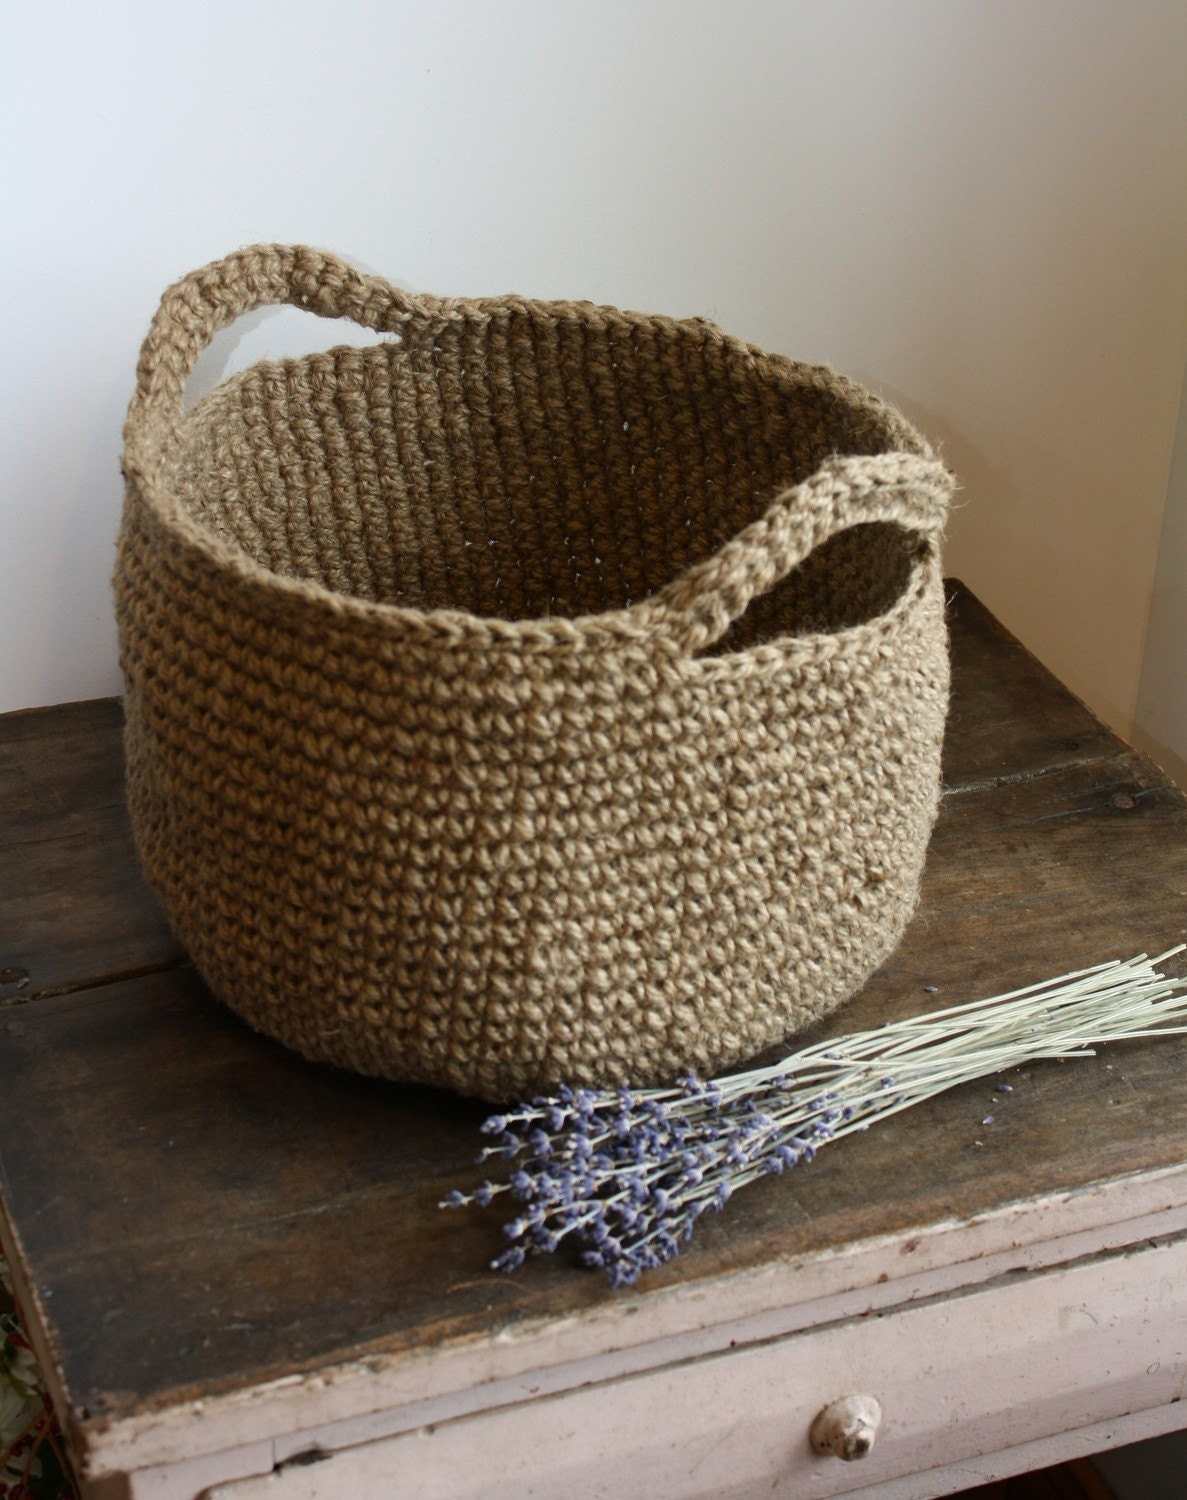 Items similar to Large Jute Basket With Handles on Etsy